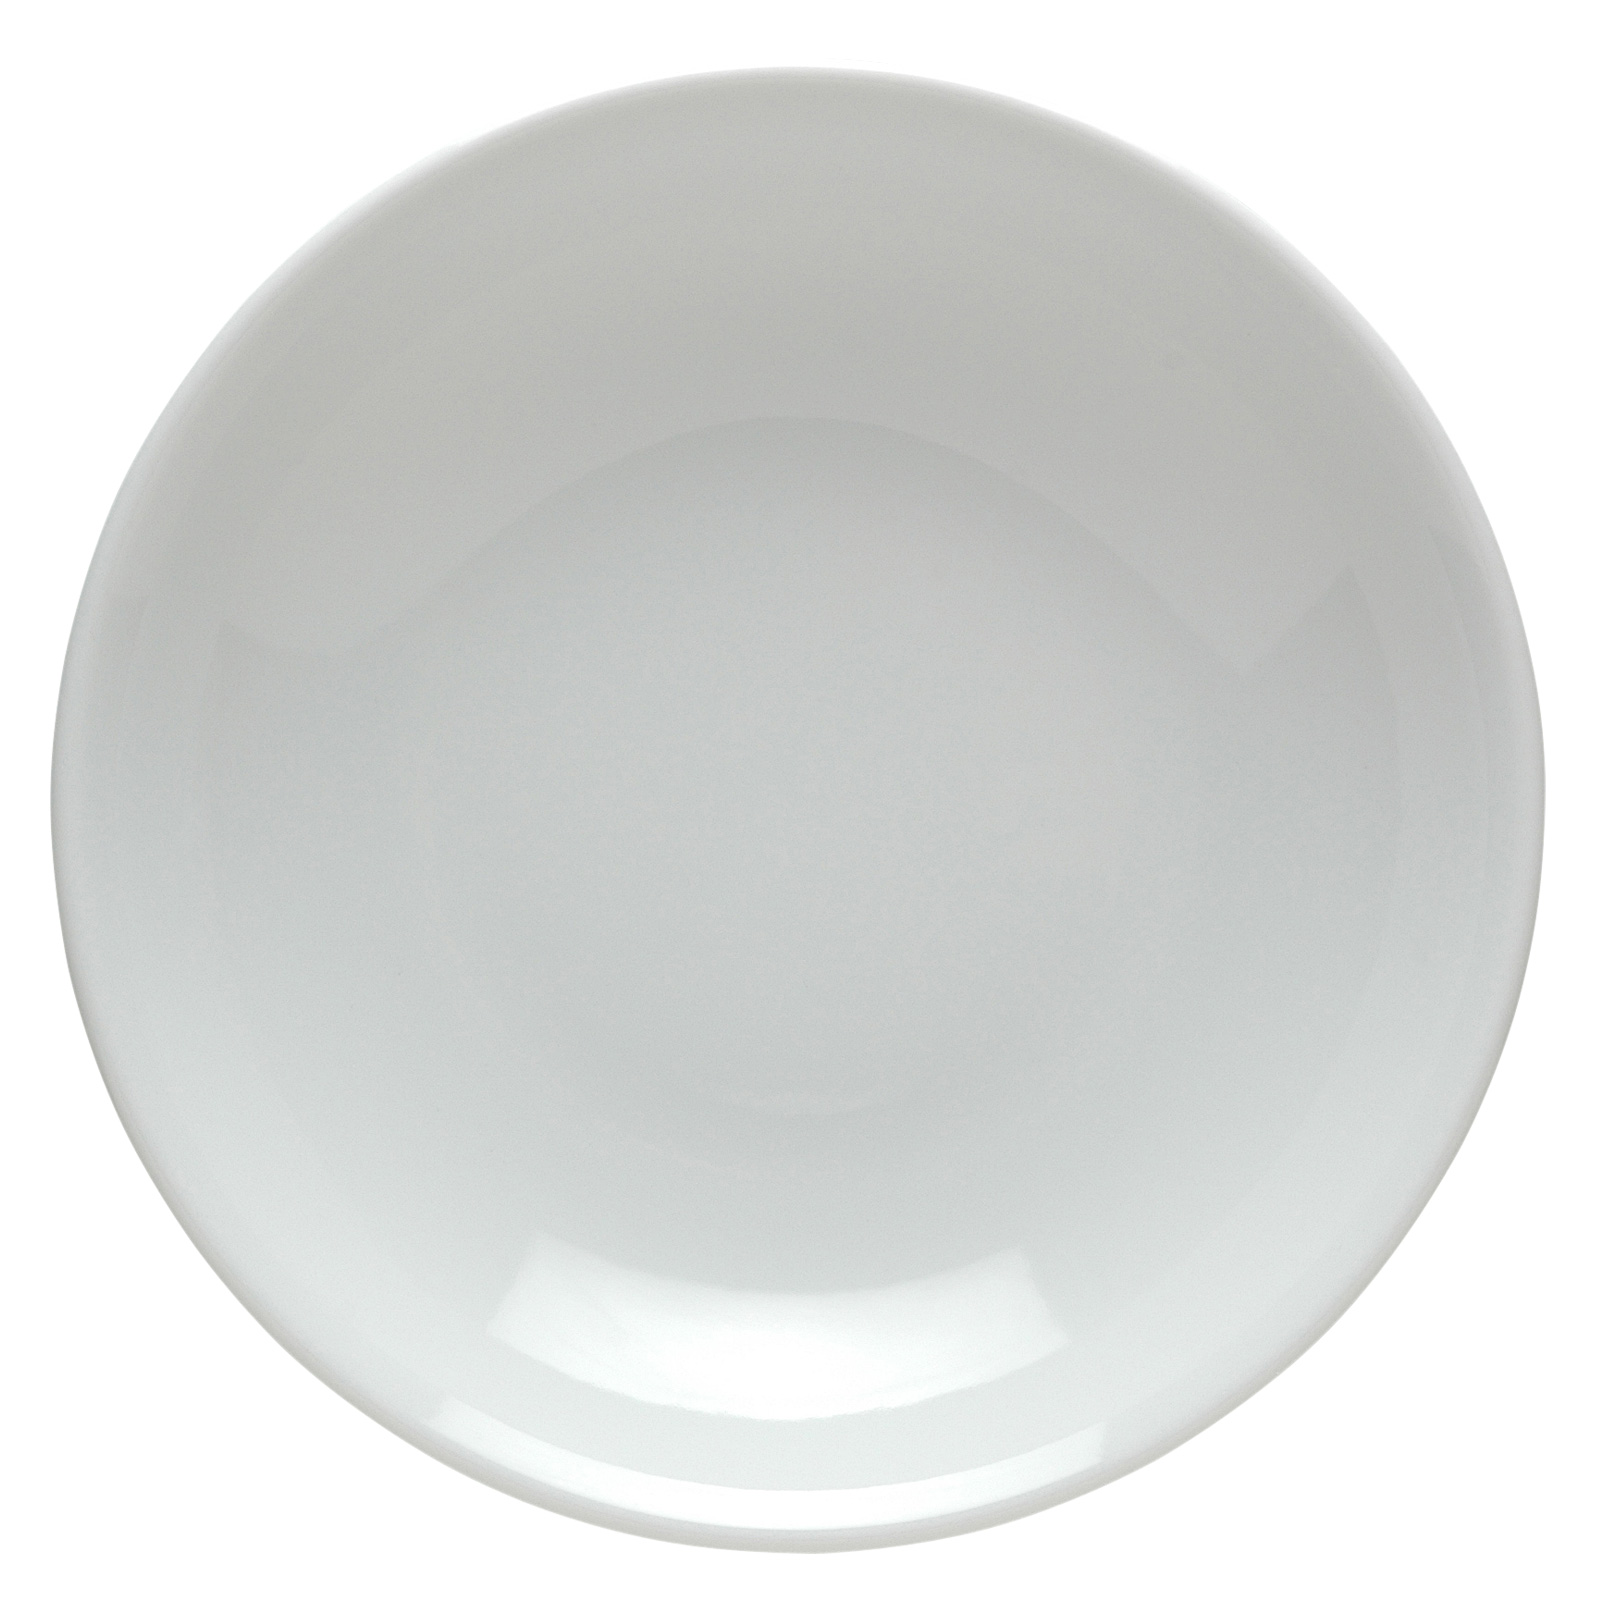 Hotel Flat Plate Small